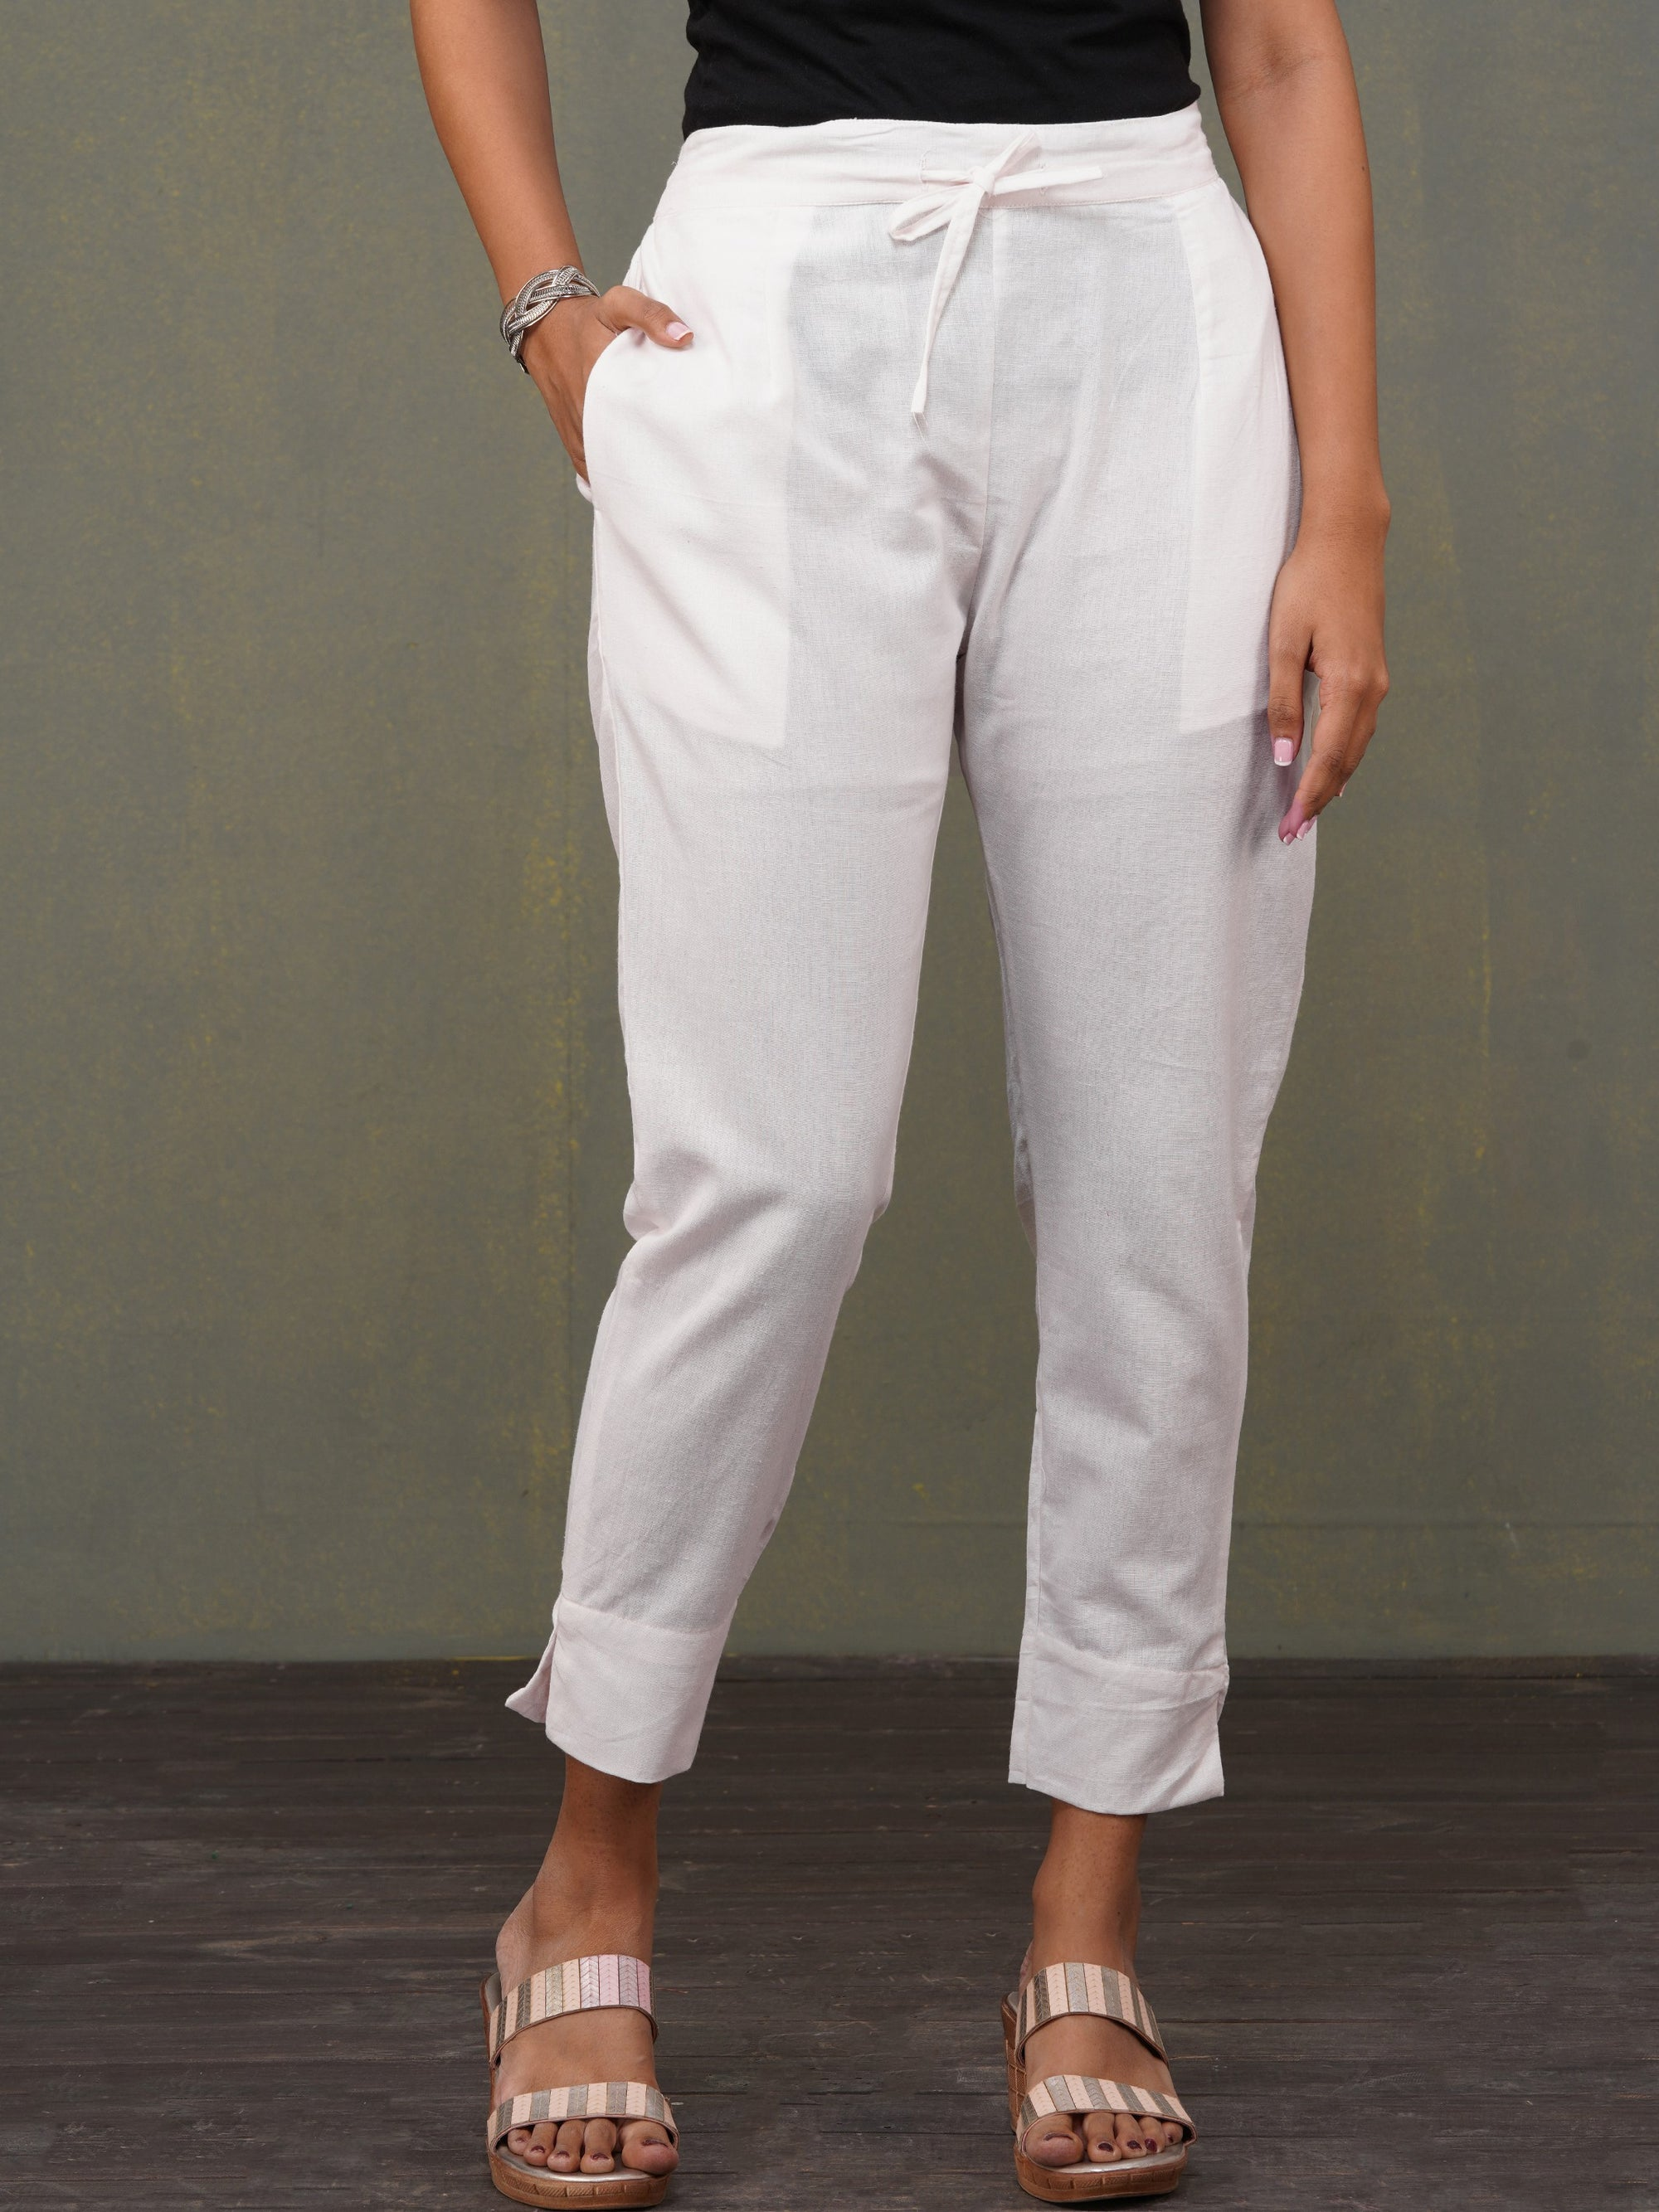 Solid Handloom Straight Fit Pant – Ivory White